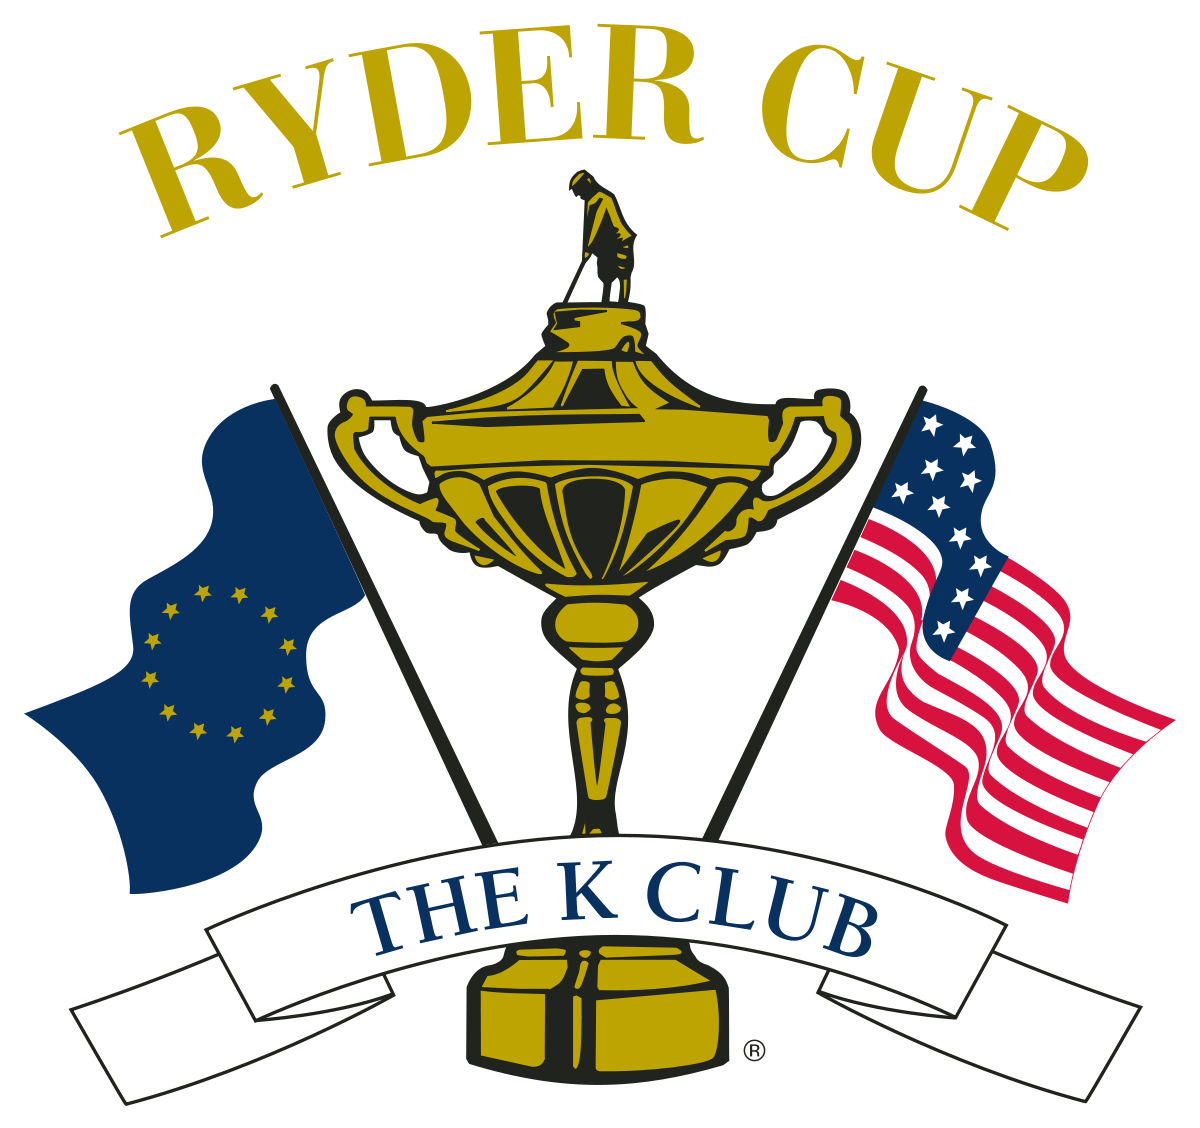 Cadillac crown emblem clipart picture 2006 Ryder Cup - Wikipedia picture